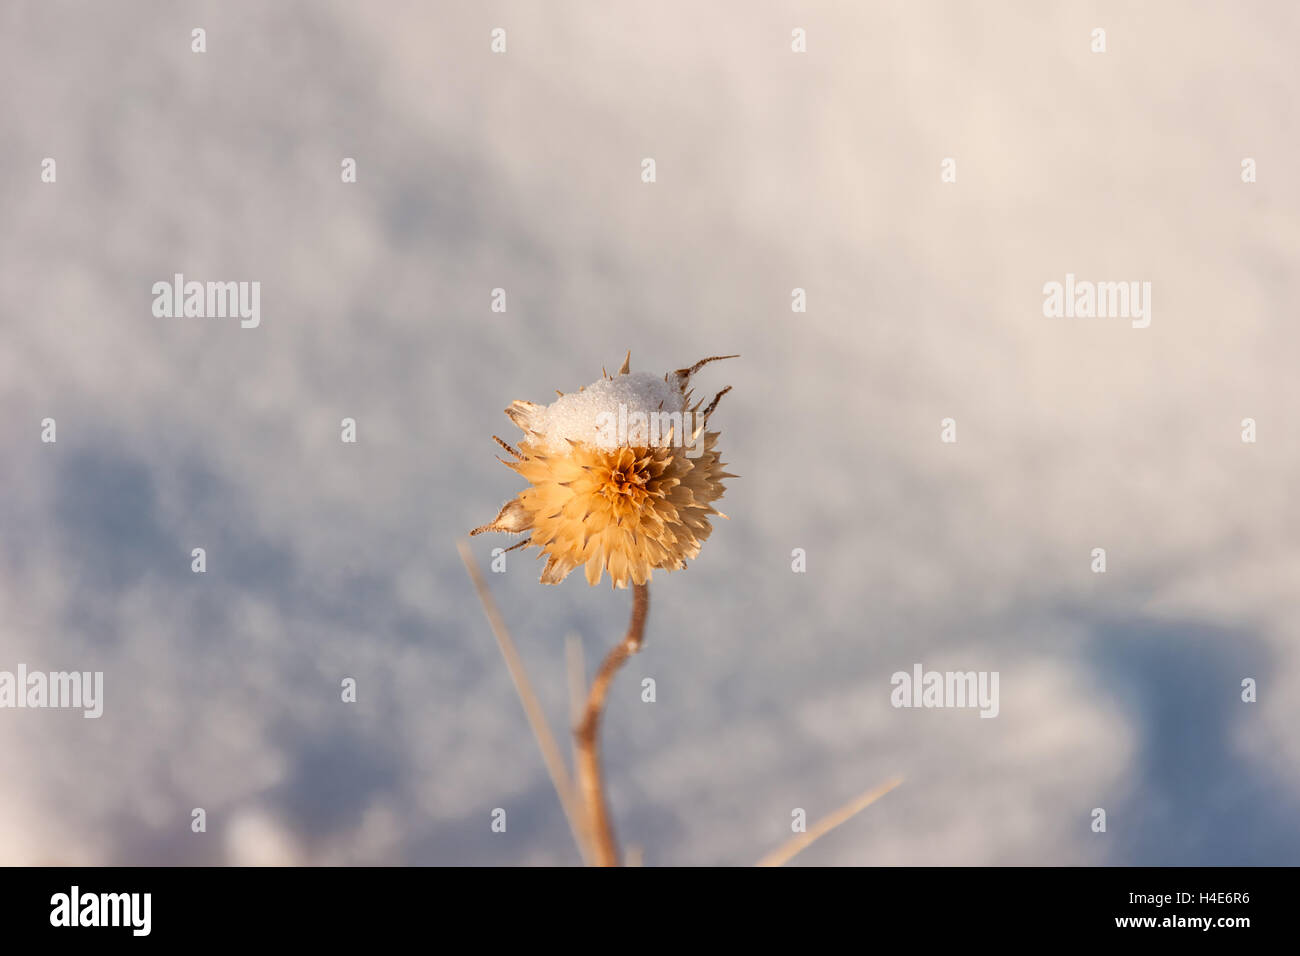 Dead blossom with snow on it - Stock Image